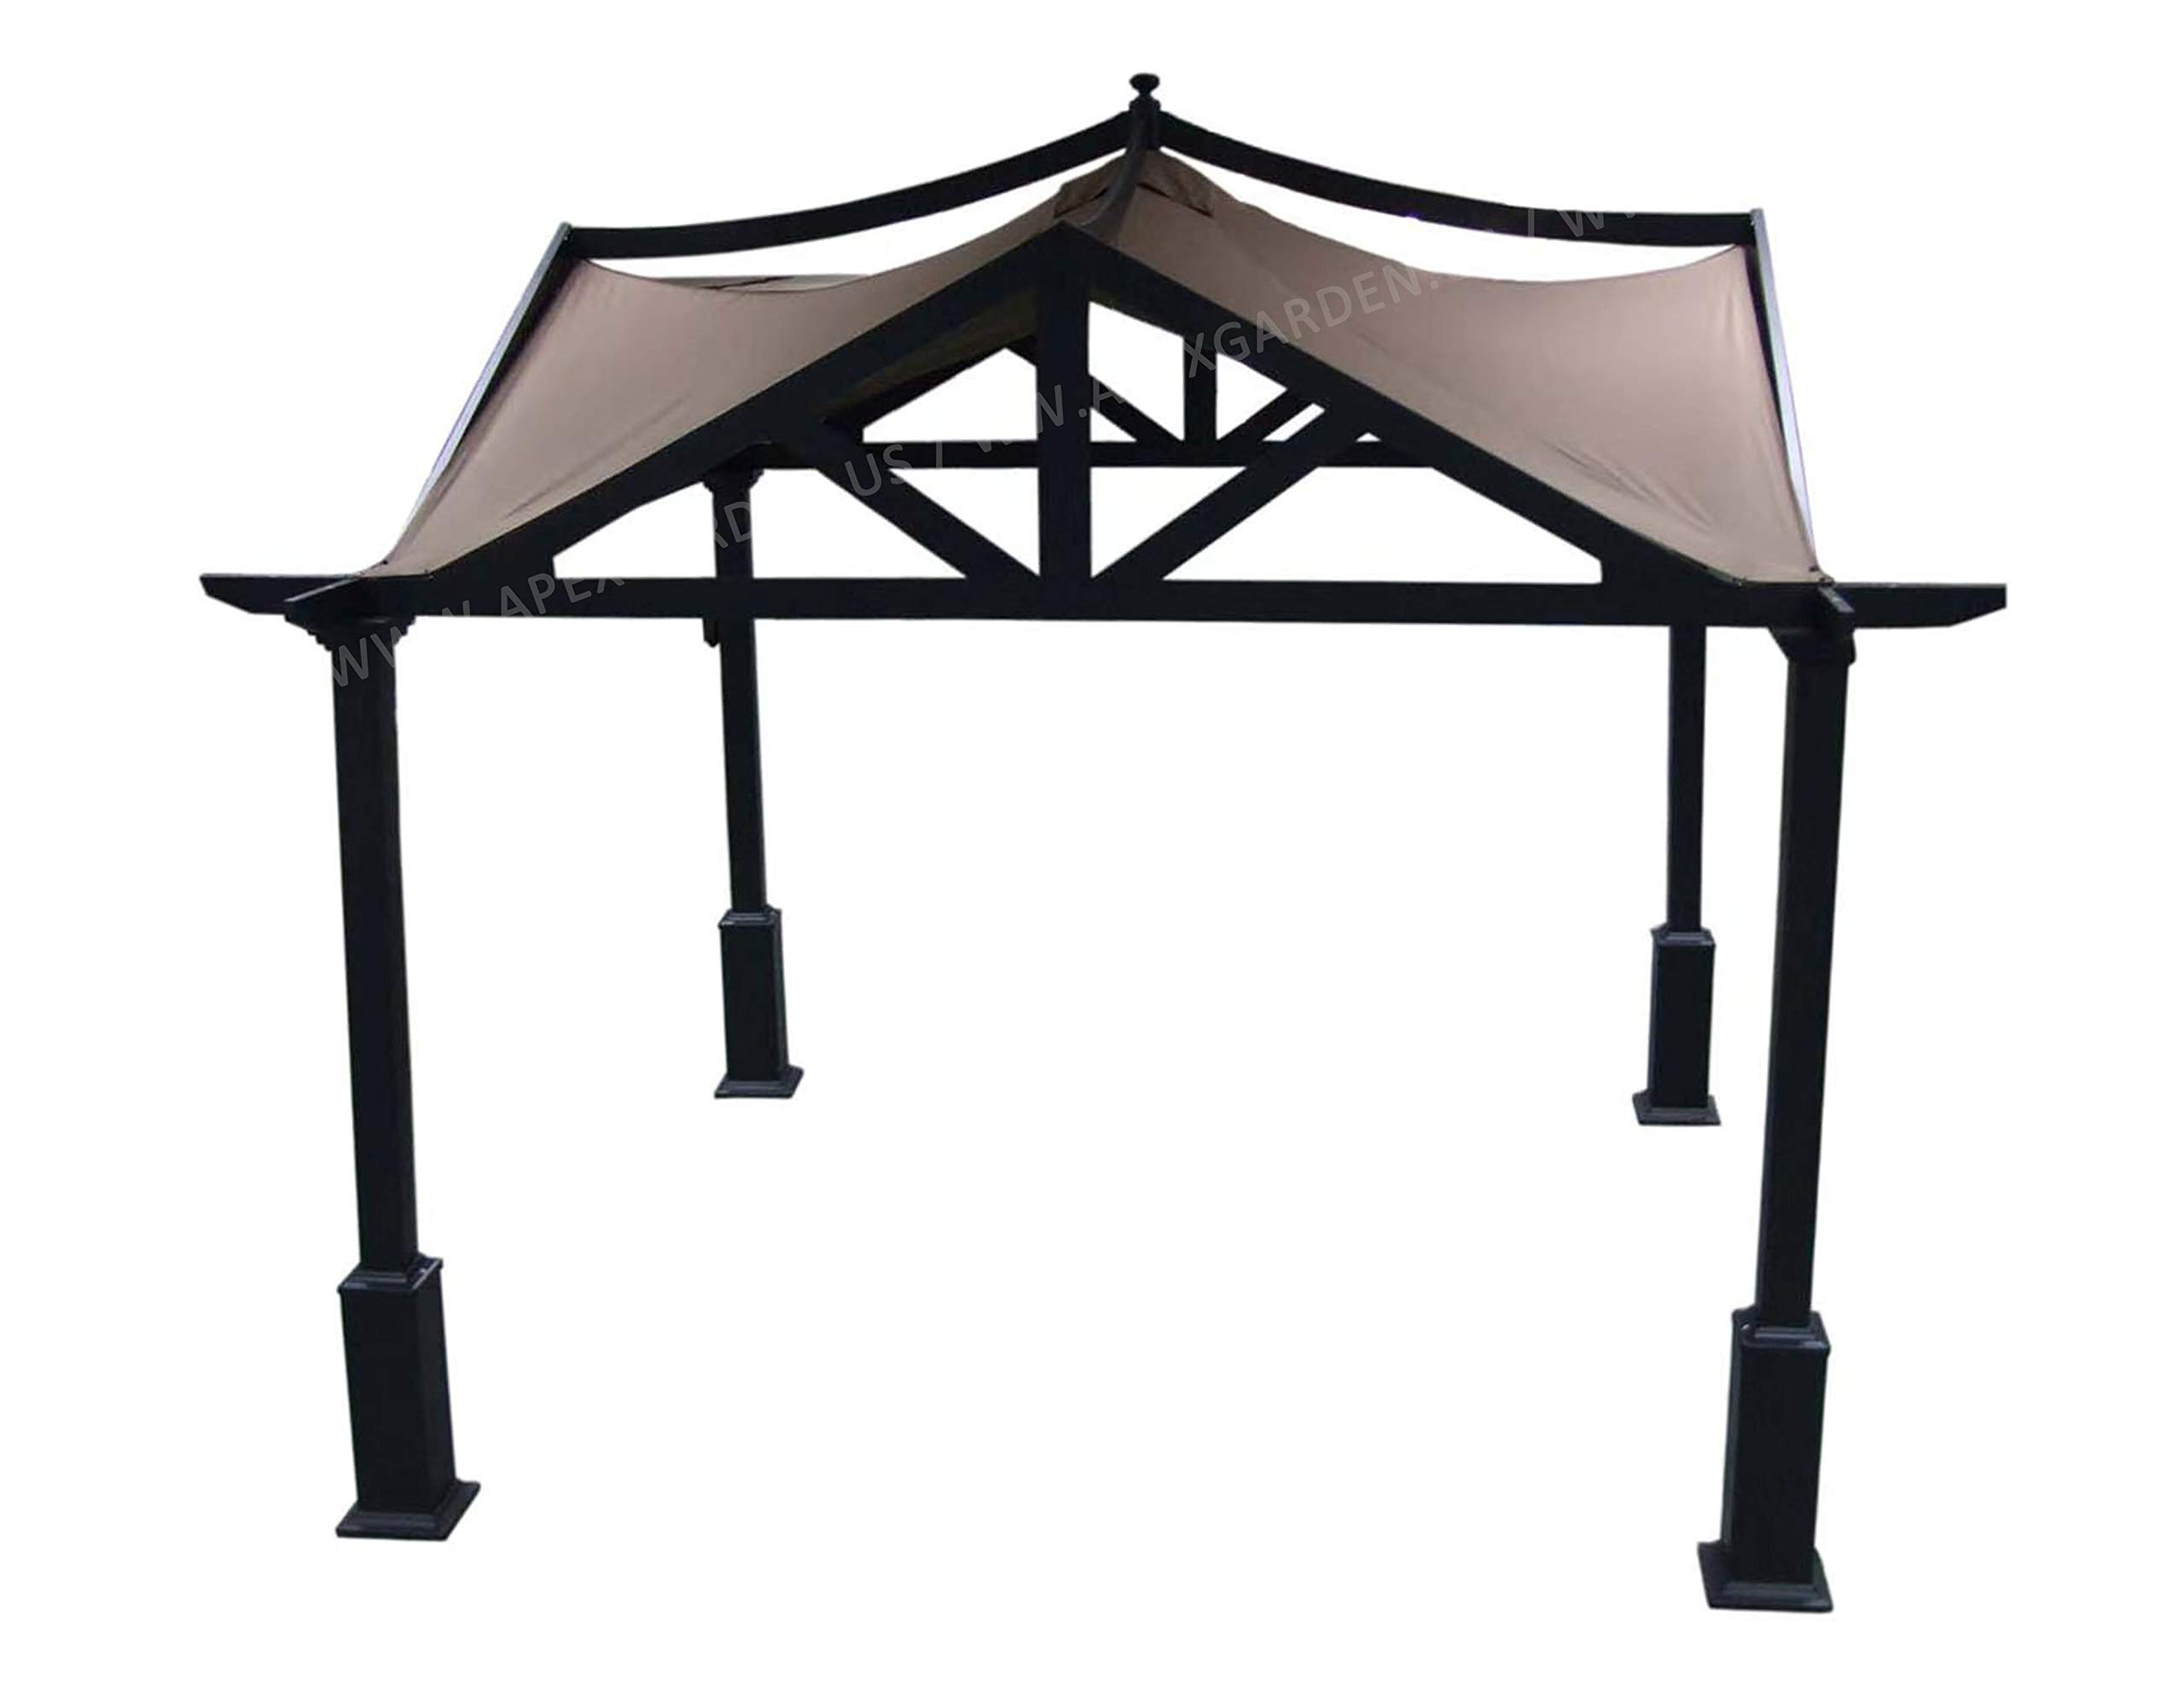 APEX GARDEN Replacement Canopy Top for Lowe's 10 ft x 10 ft Gazebo #GF-12S039B / GF-9A037X by APEX GARDEN (Image #3)